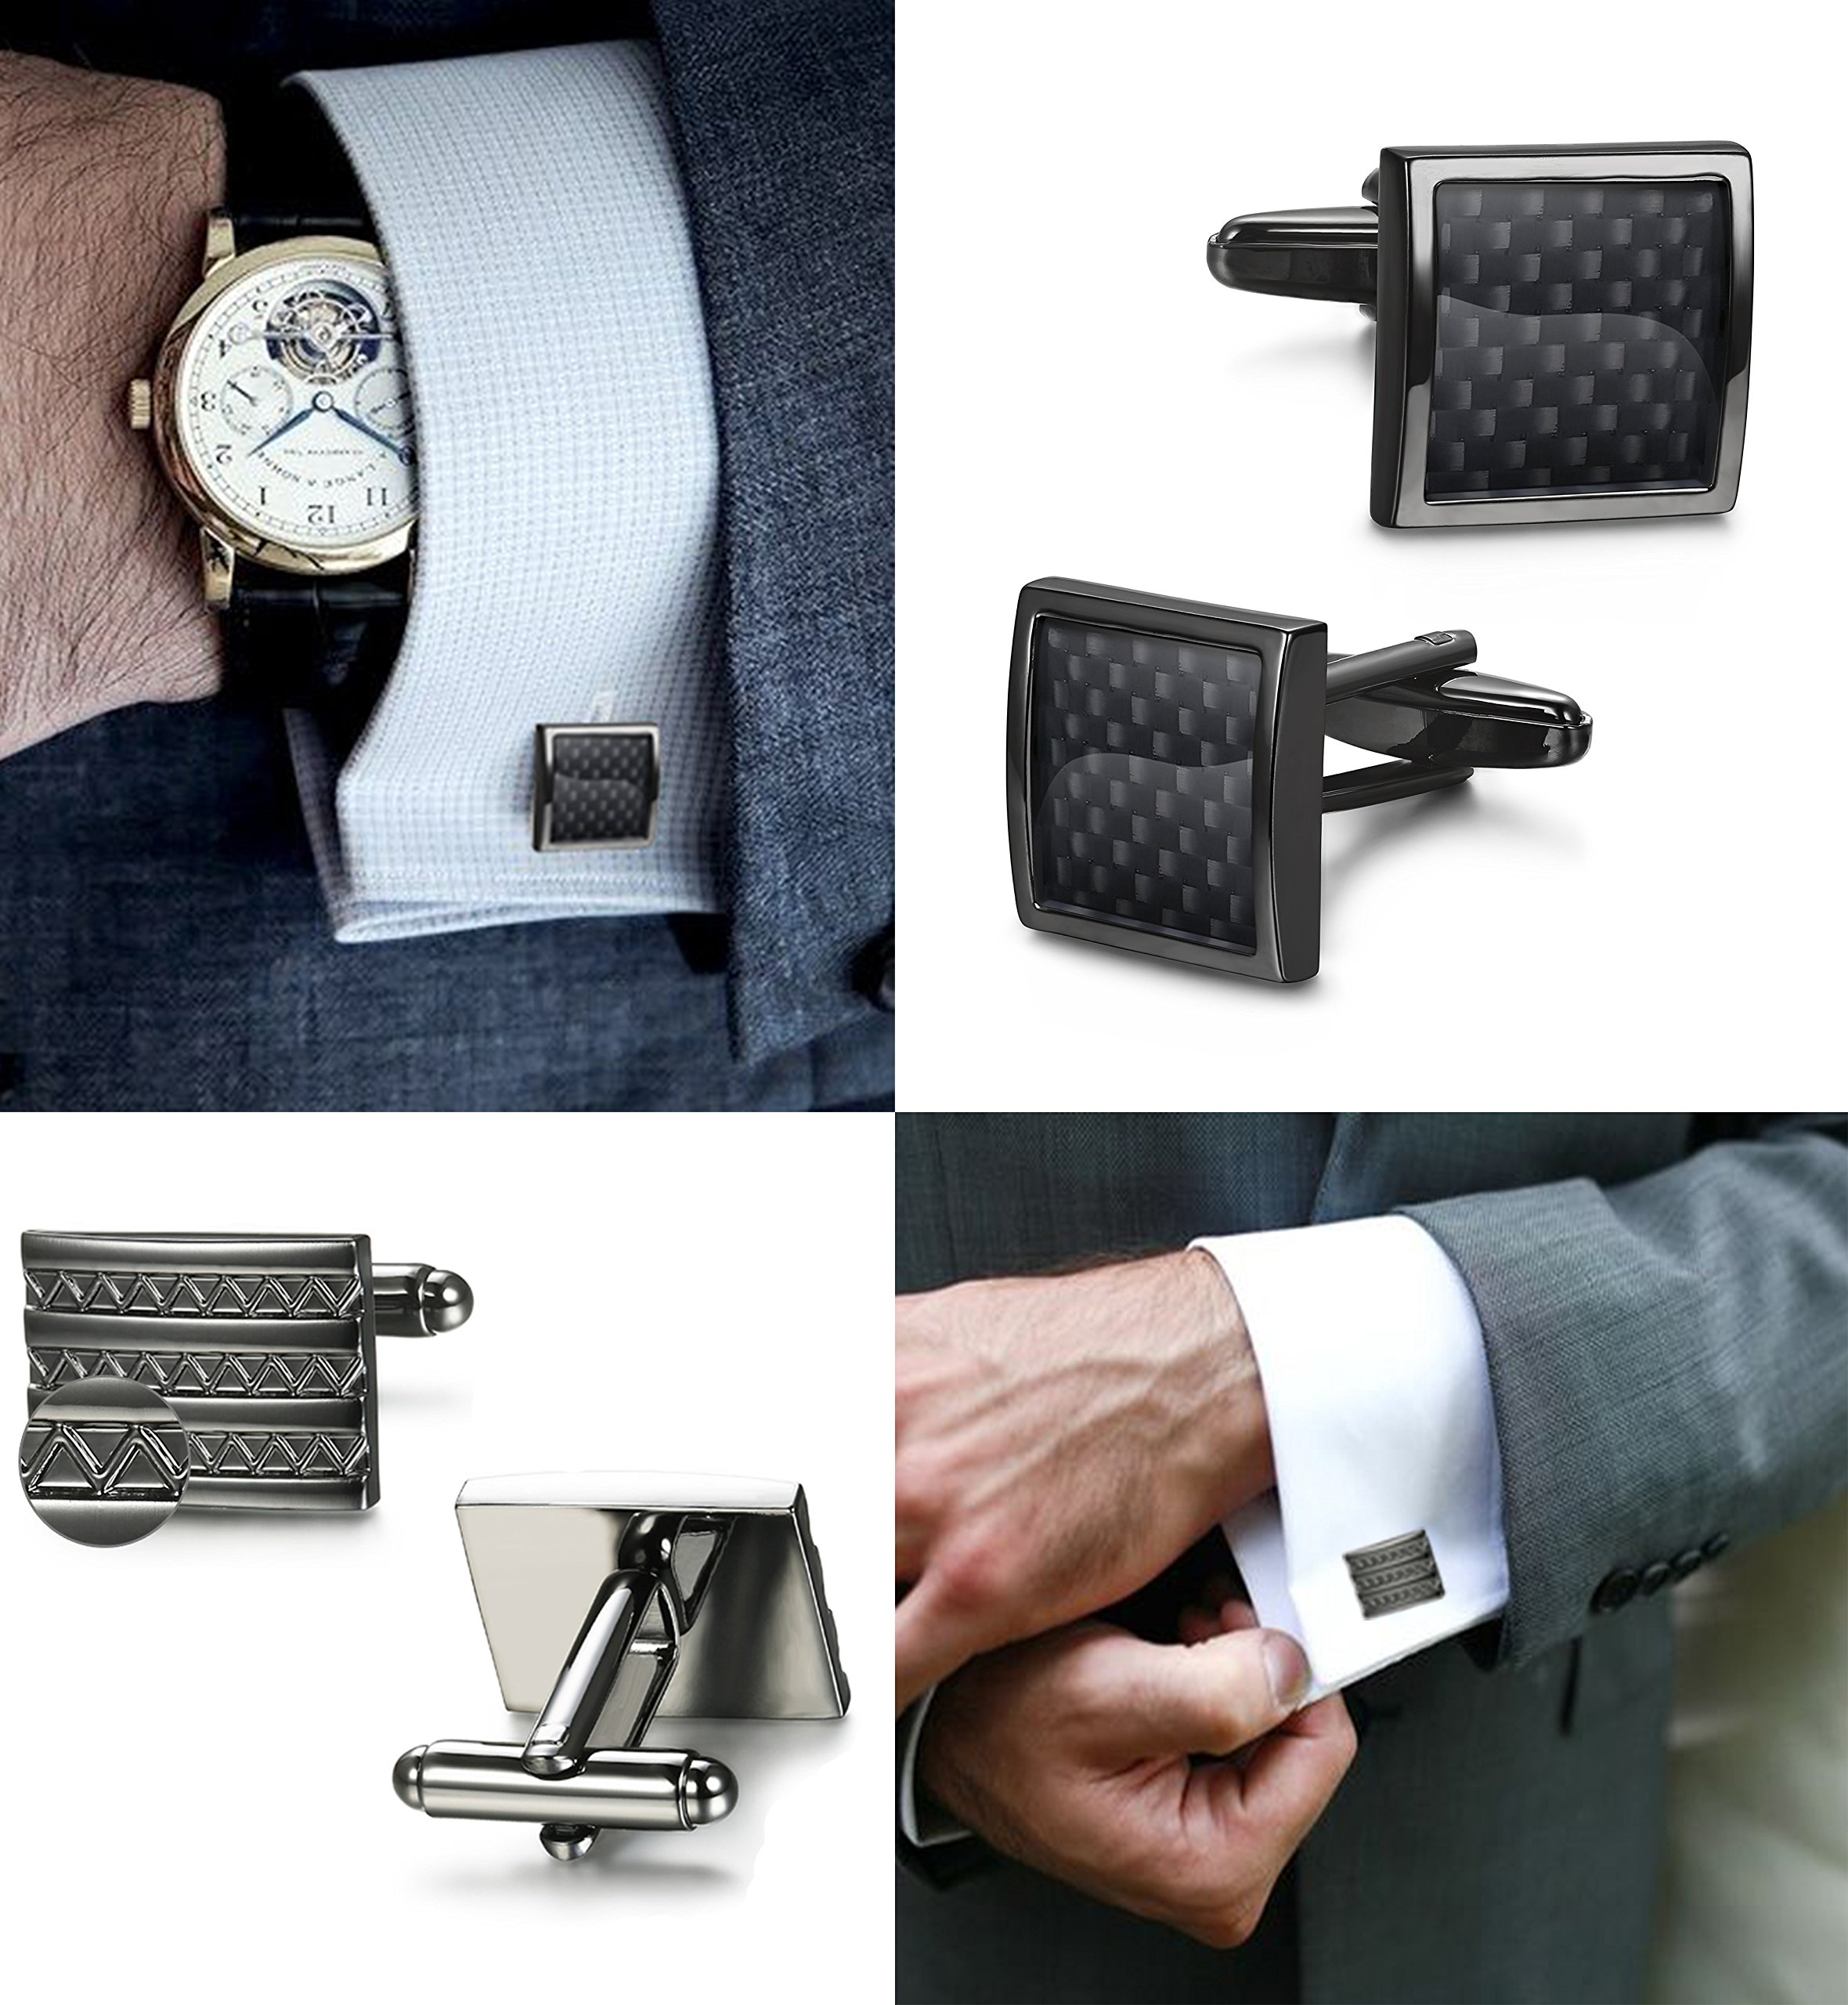 FIBO STEEL Class Cufflinks for Men Black Unique Wedding Cufflink Set Mens Dad Birthday Gifts by FIBO STEEL (Image #5)